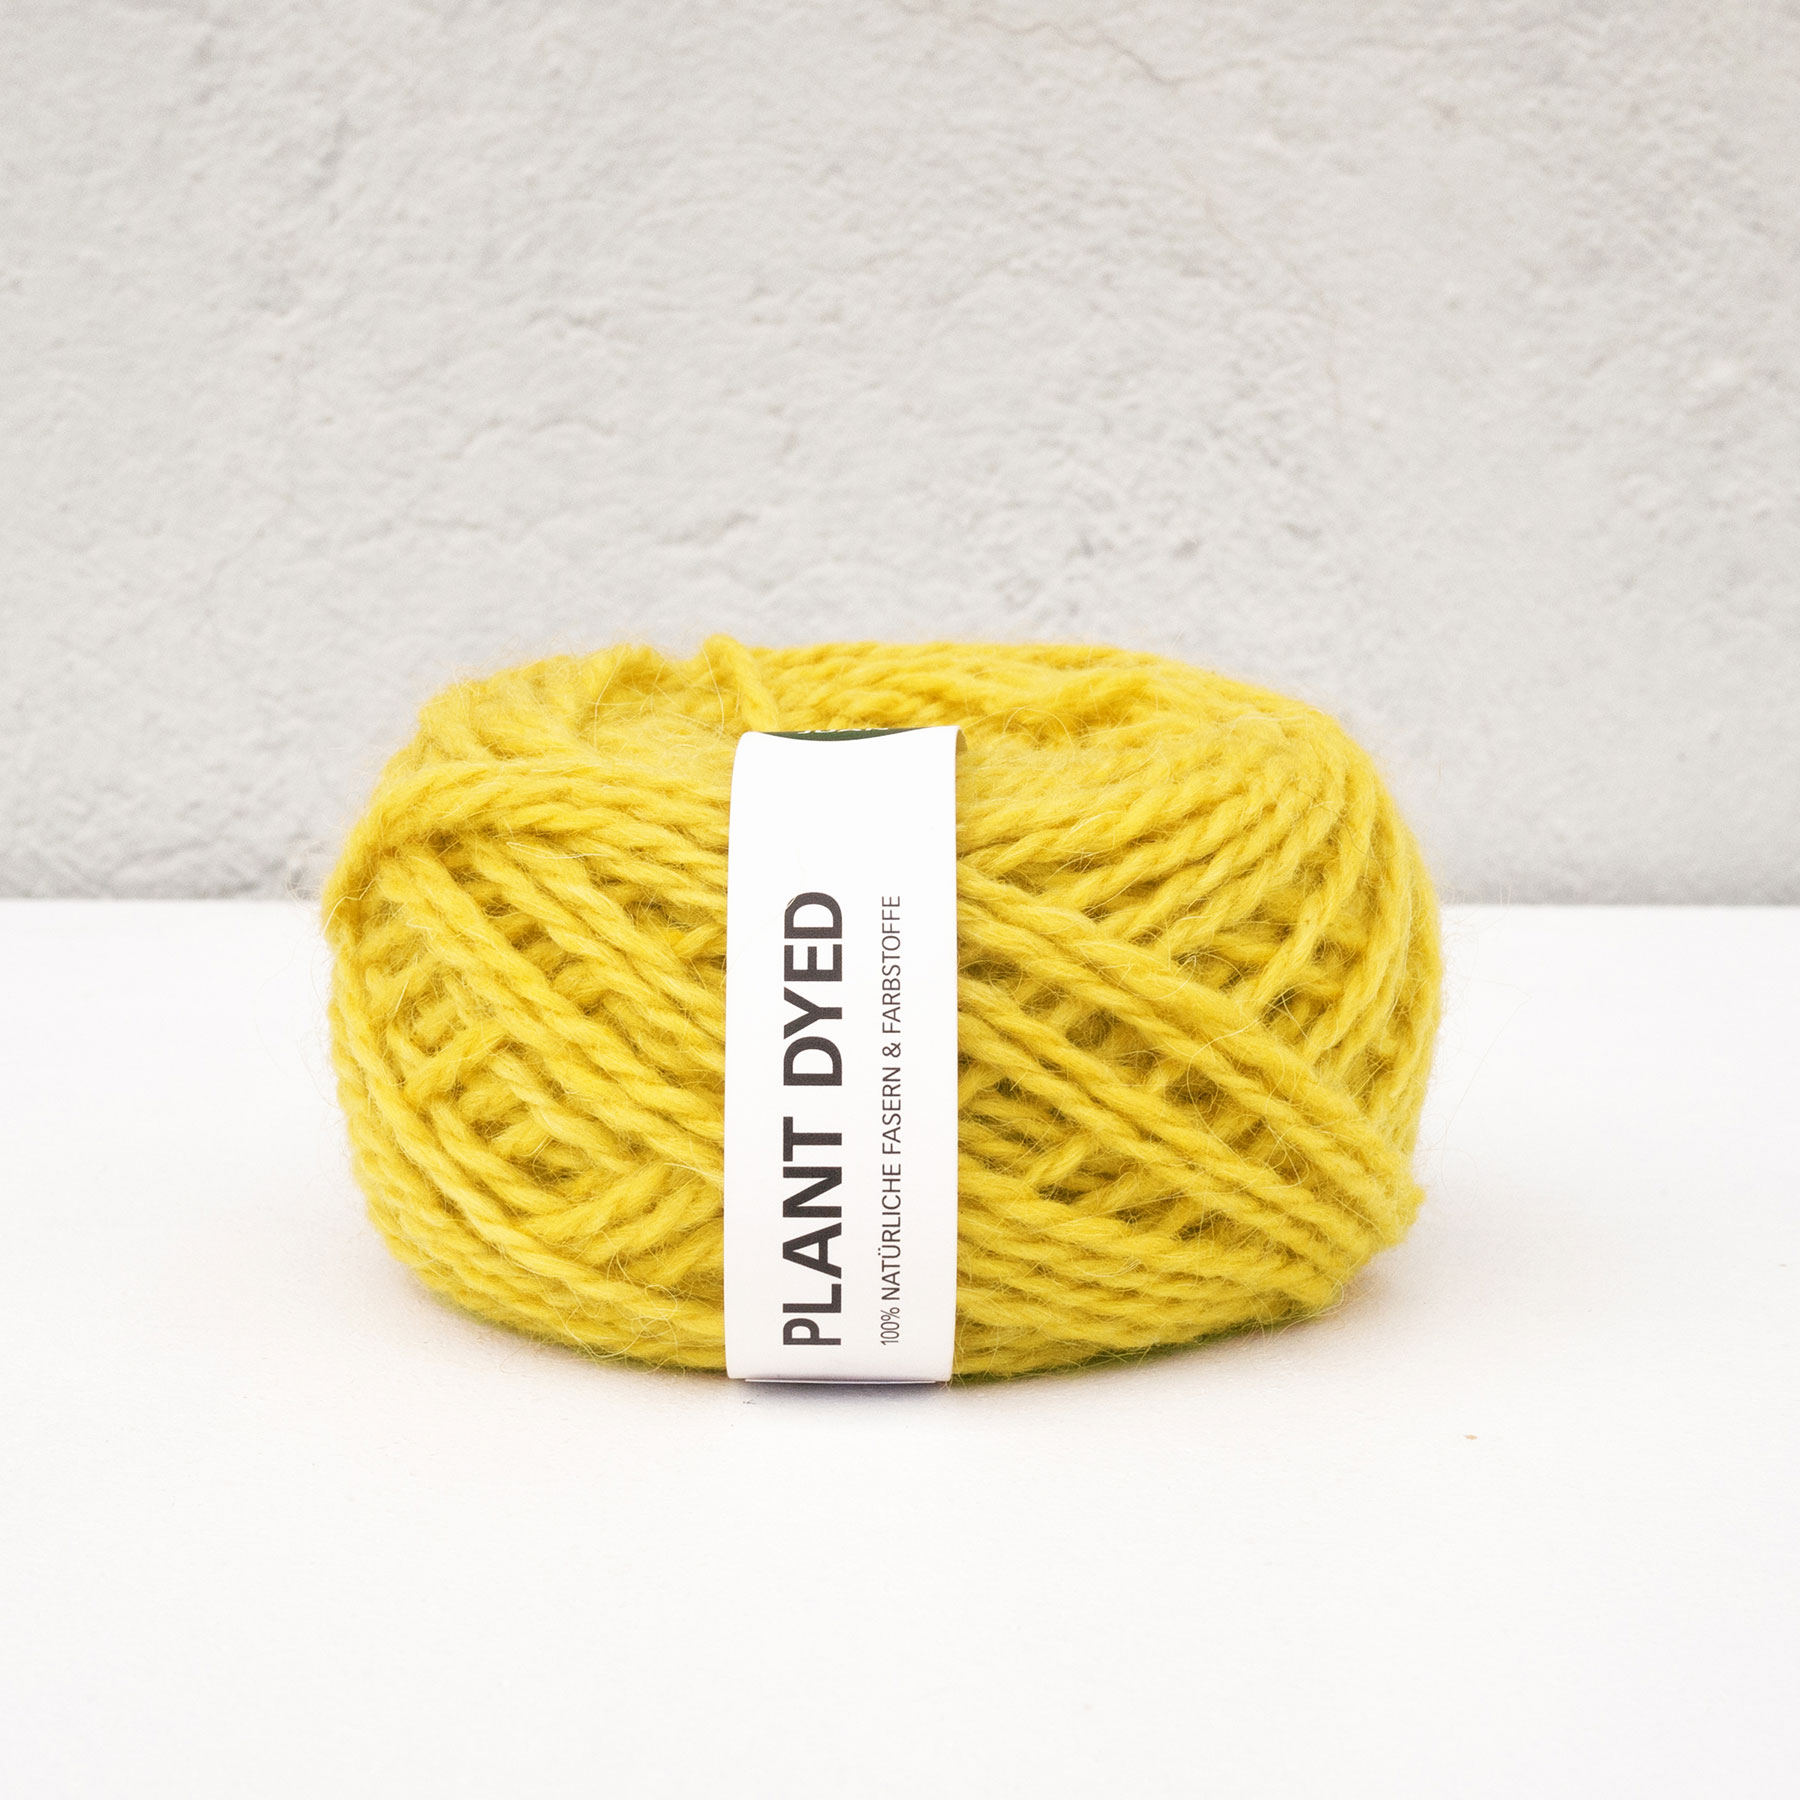 Anna & Juans «Llama Argentina – Plant Dyed» – Light Worsted/Worsted – Reseda luteola